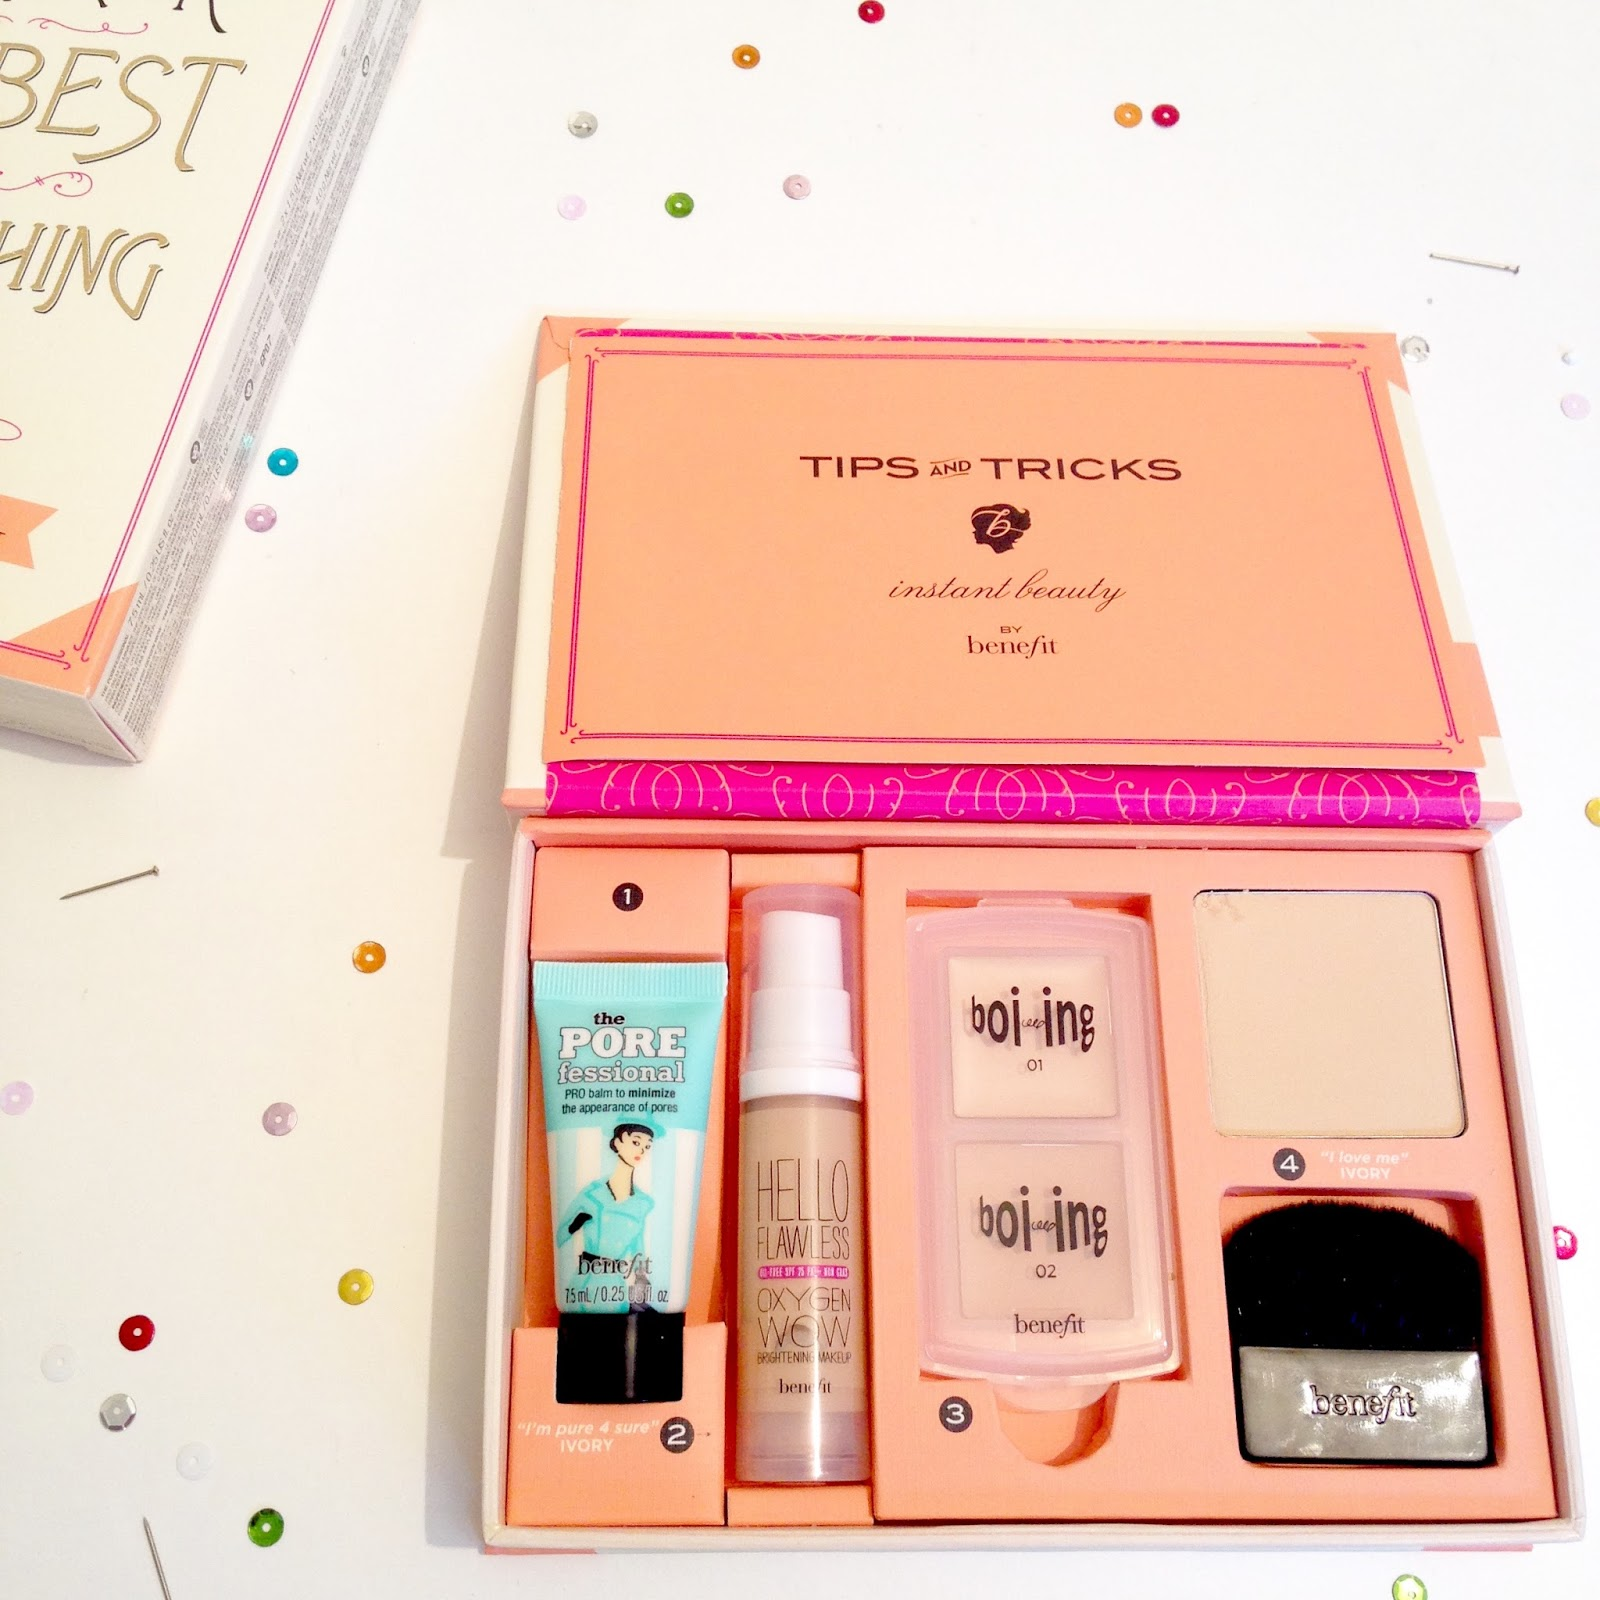 Benefit's How to Look the Best at Everything Kit Review